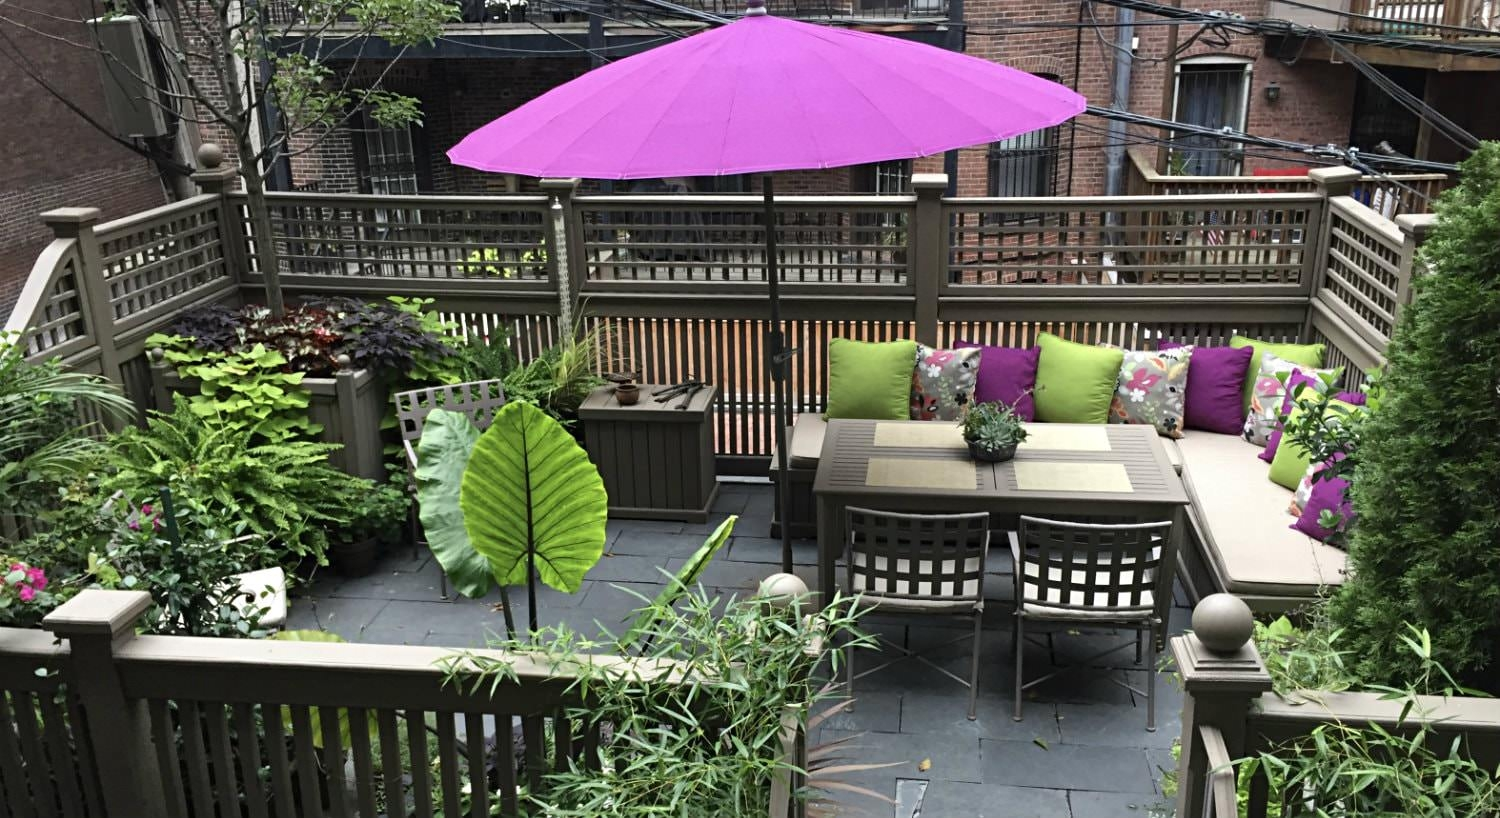 Terrace with slate floor, gray patio table and chairs, bench seating with green and purple pillows and pillow umbrella